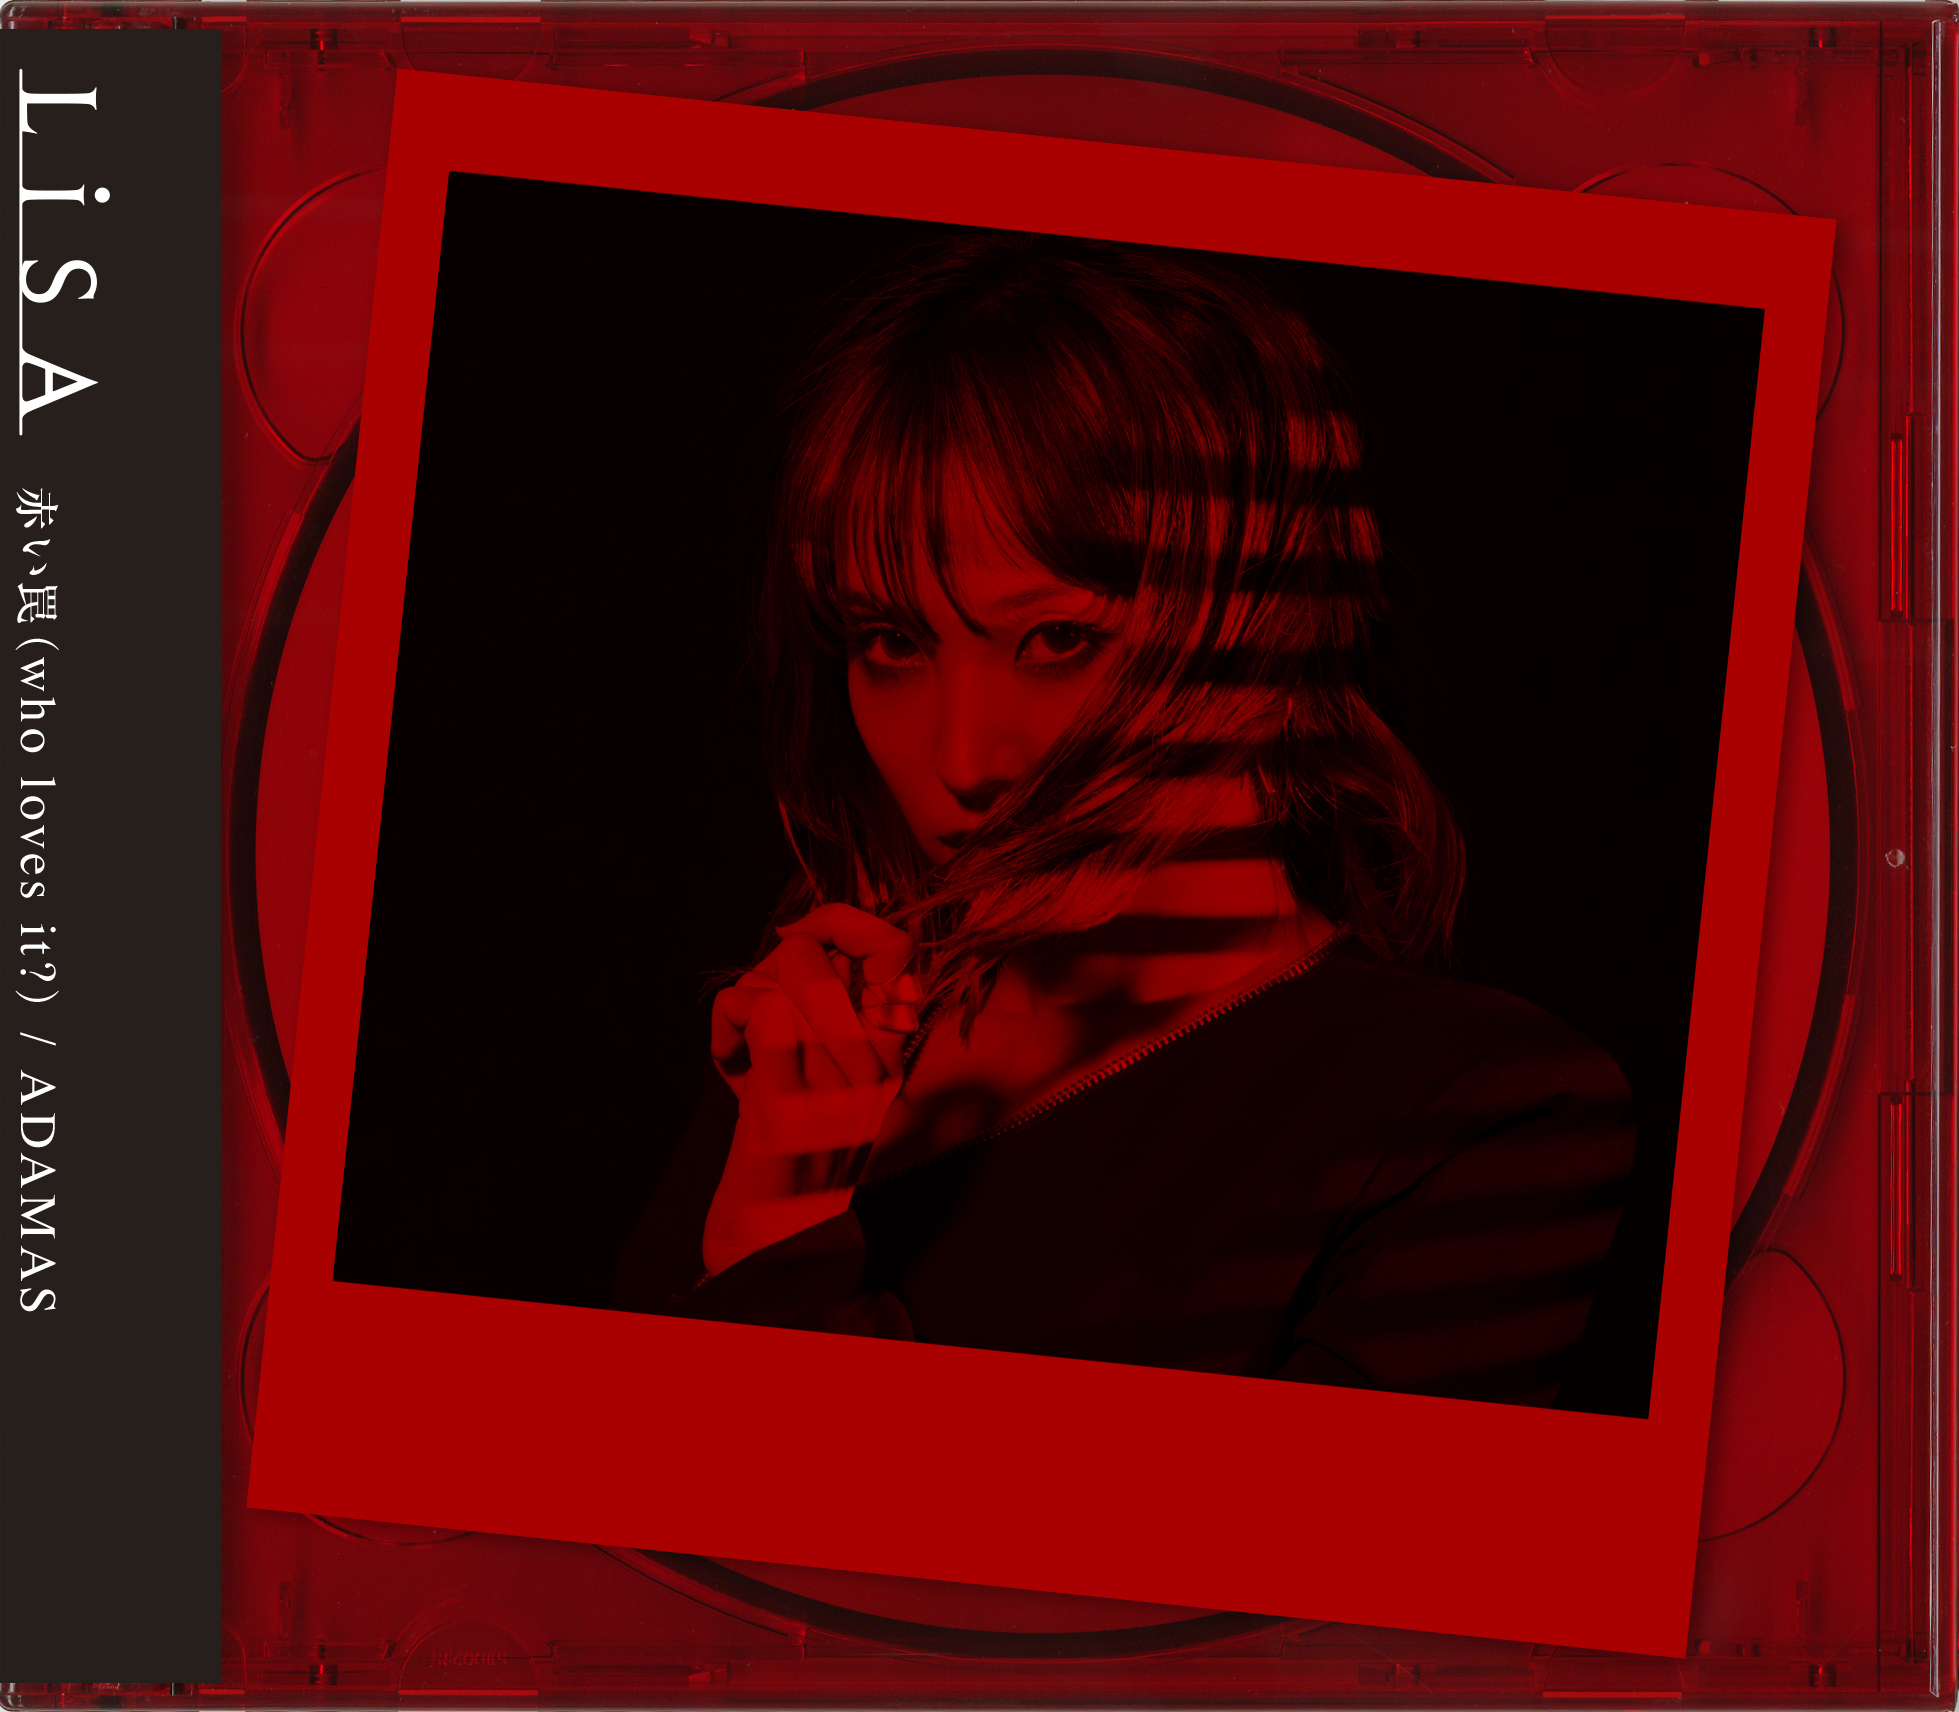 LiSA「赤い罠(who loves it?) / ADAMAS」初回生産限定盤(CD+DVD)